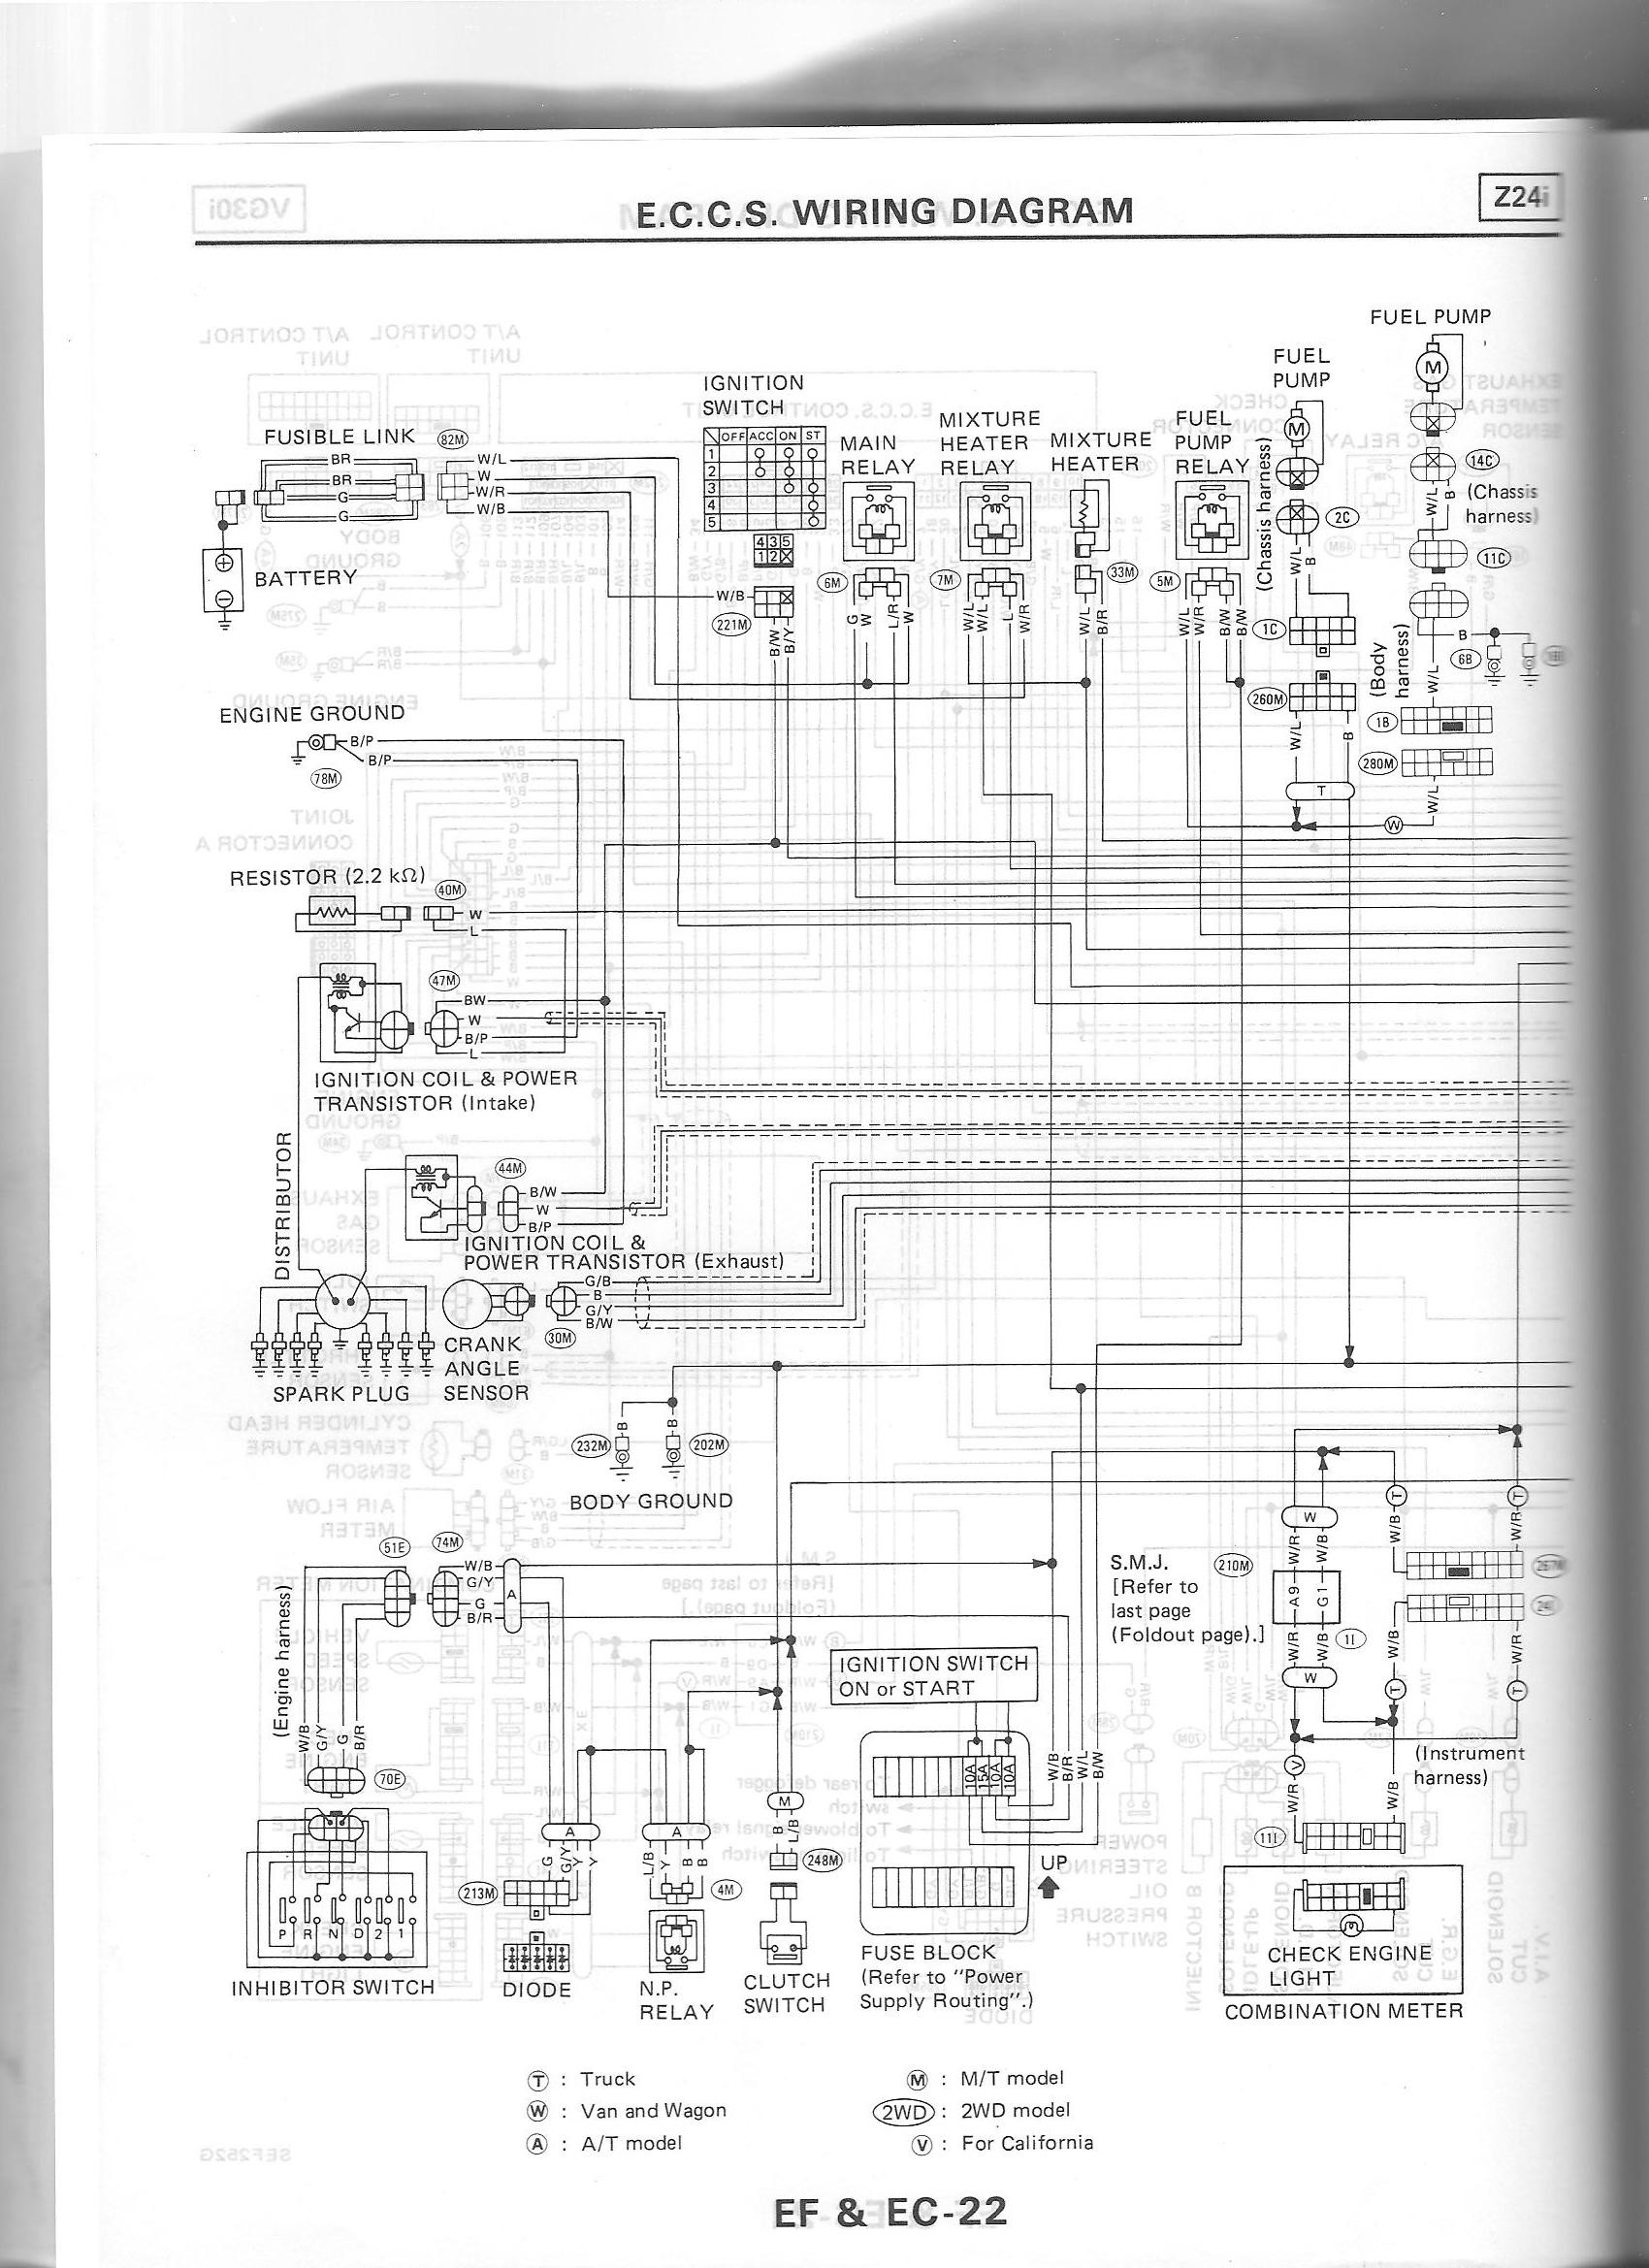 2012 Nissan Altima Engine Diagram 2007 Nissan Sentra Fuse Box Diagram Trusted Wiring Diagram Of 2012 Nissan Altima Engine Diagram